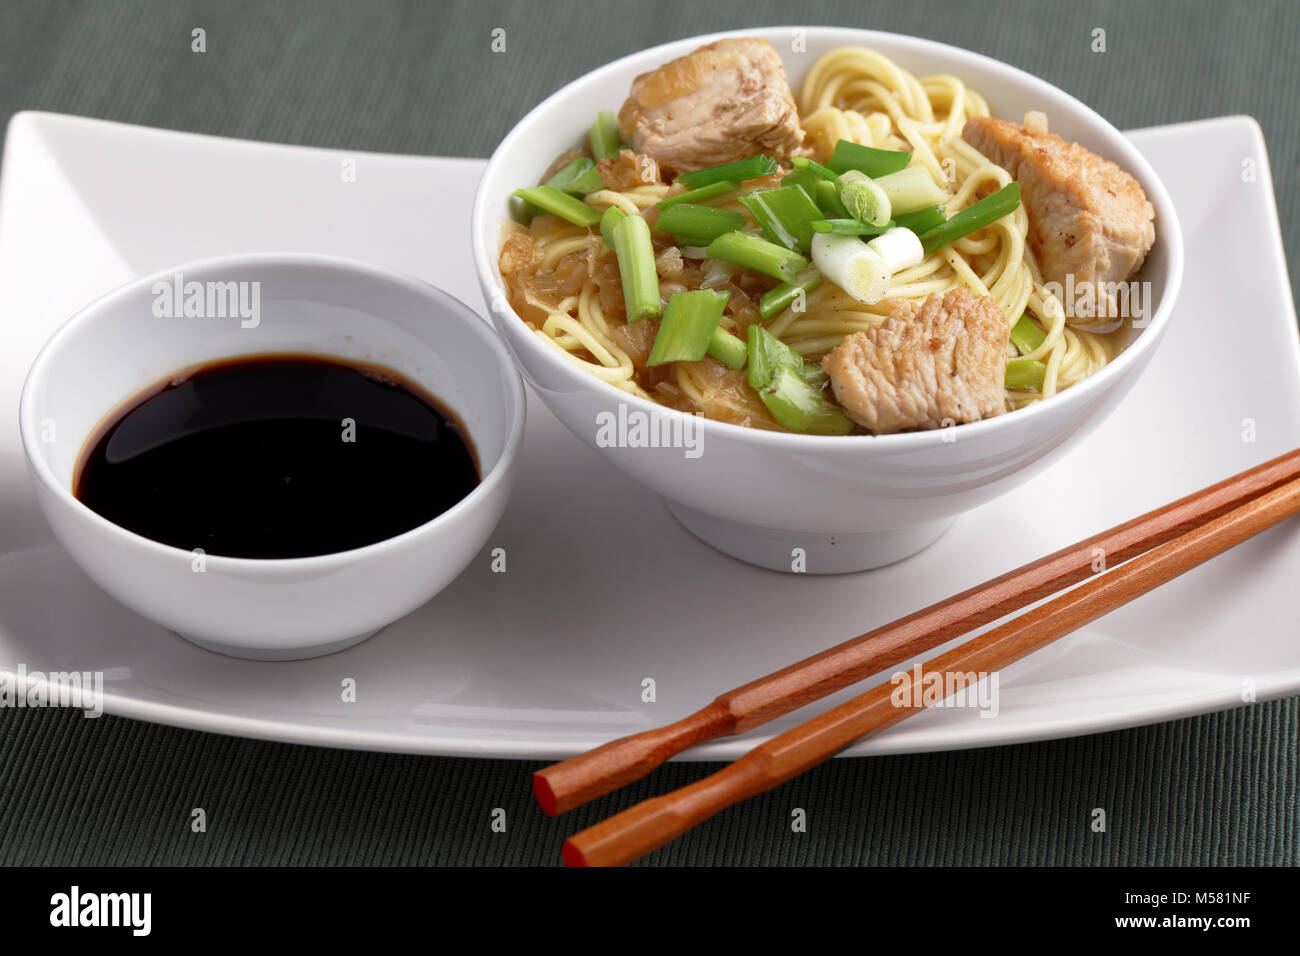 Udon noodle soup with chicken meat, green onion, and soy sauce - Stock Image